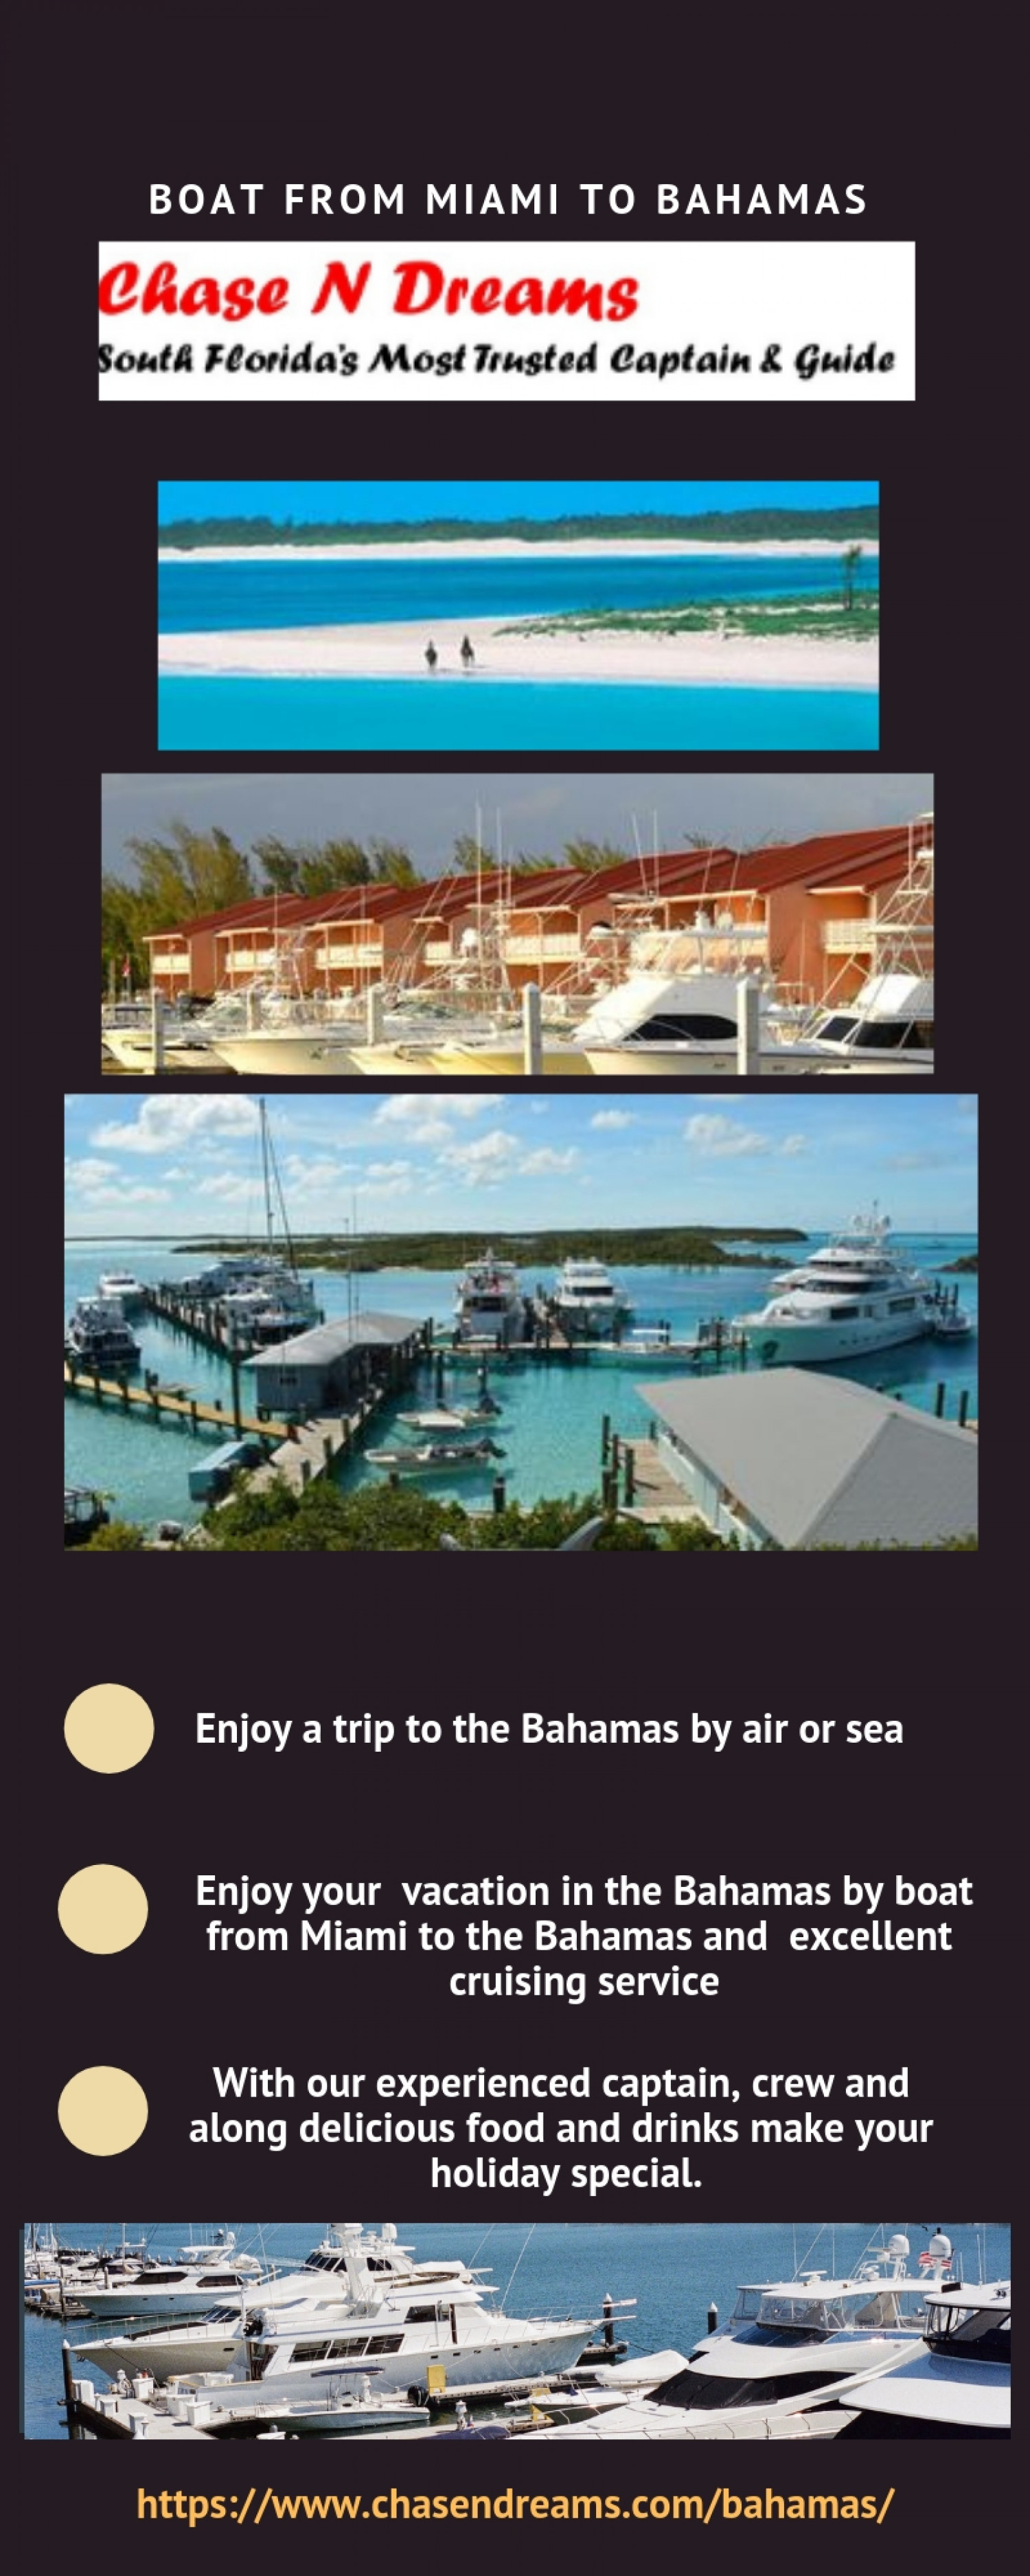 Boat From Miami To Bahamas Infographic